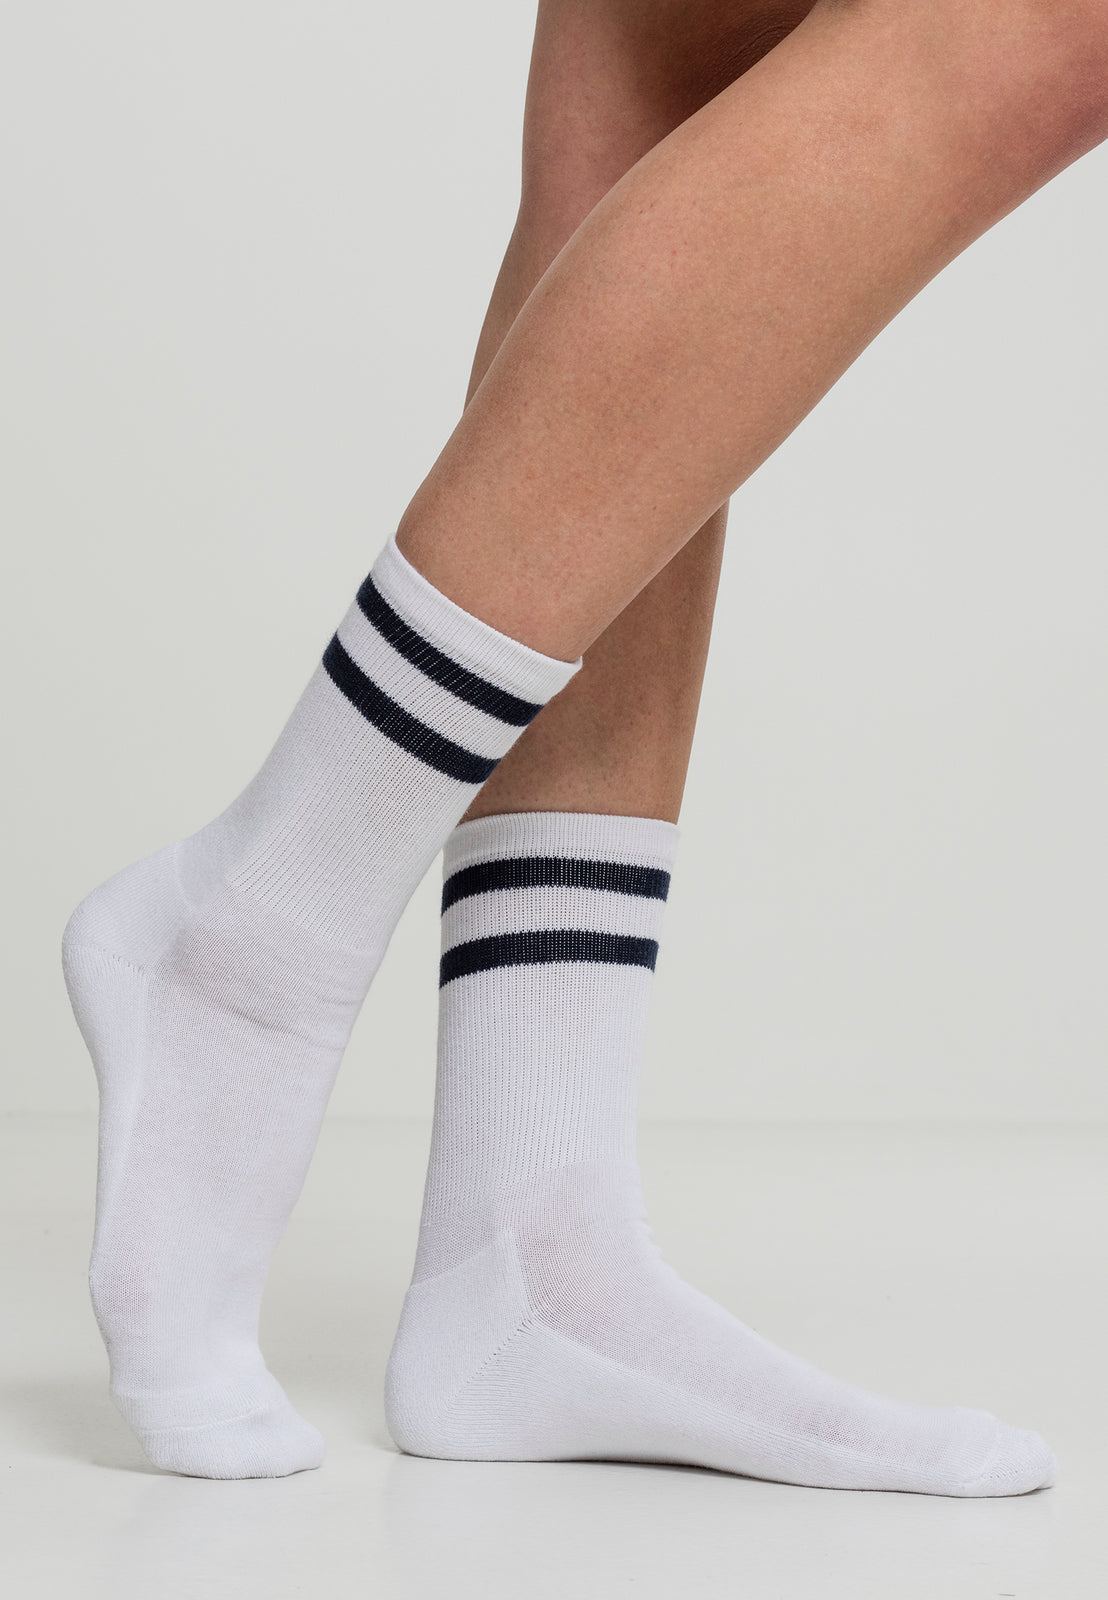 2-Stripe Socks 2-Pack white/navy